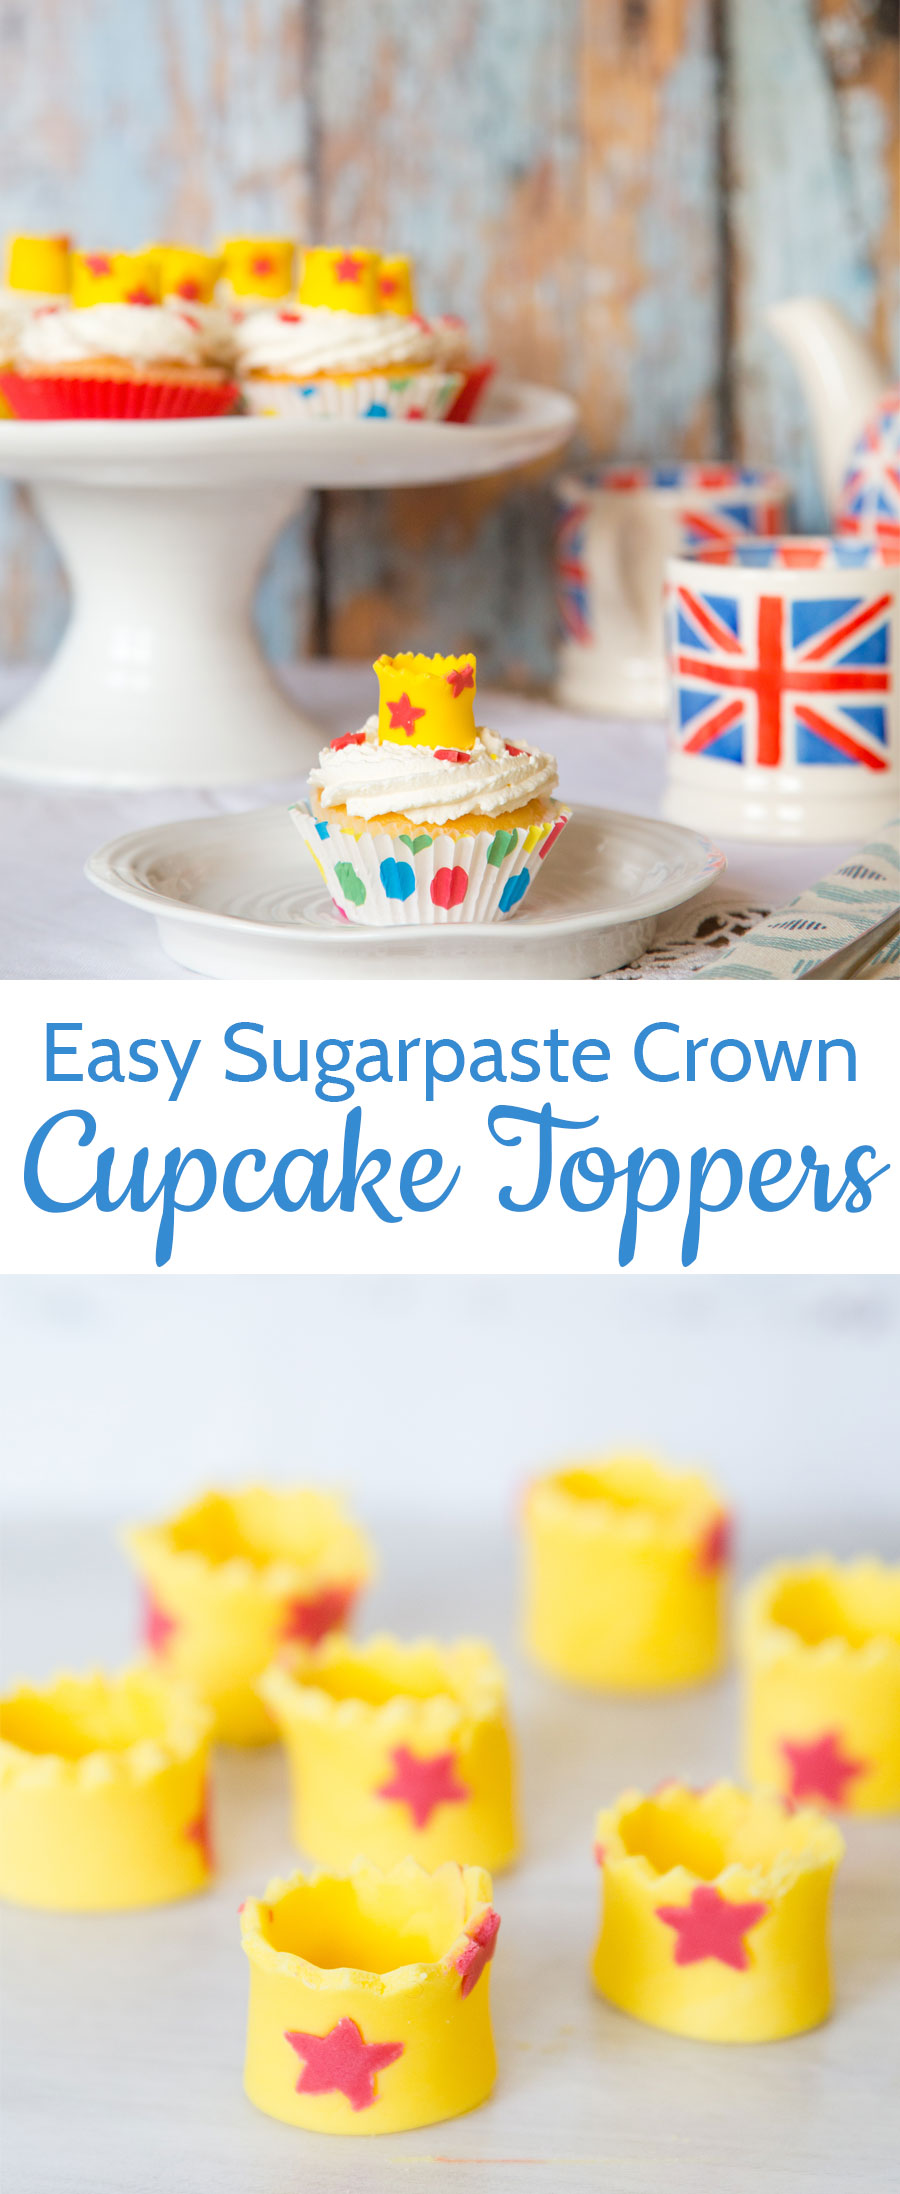 A tutorial for making these simple crown cupcake toppers - ideal for a princess party!